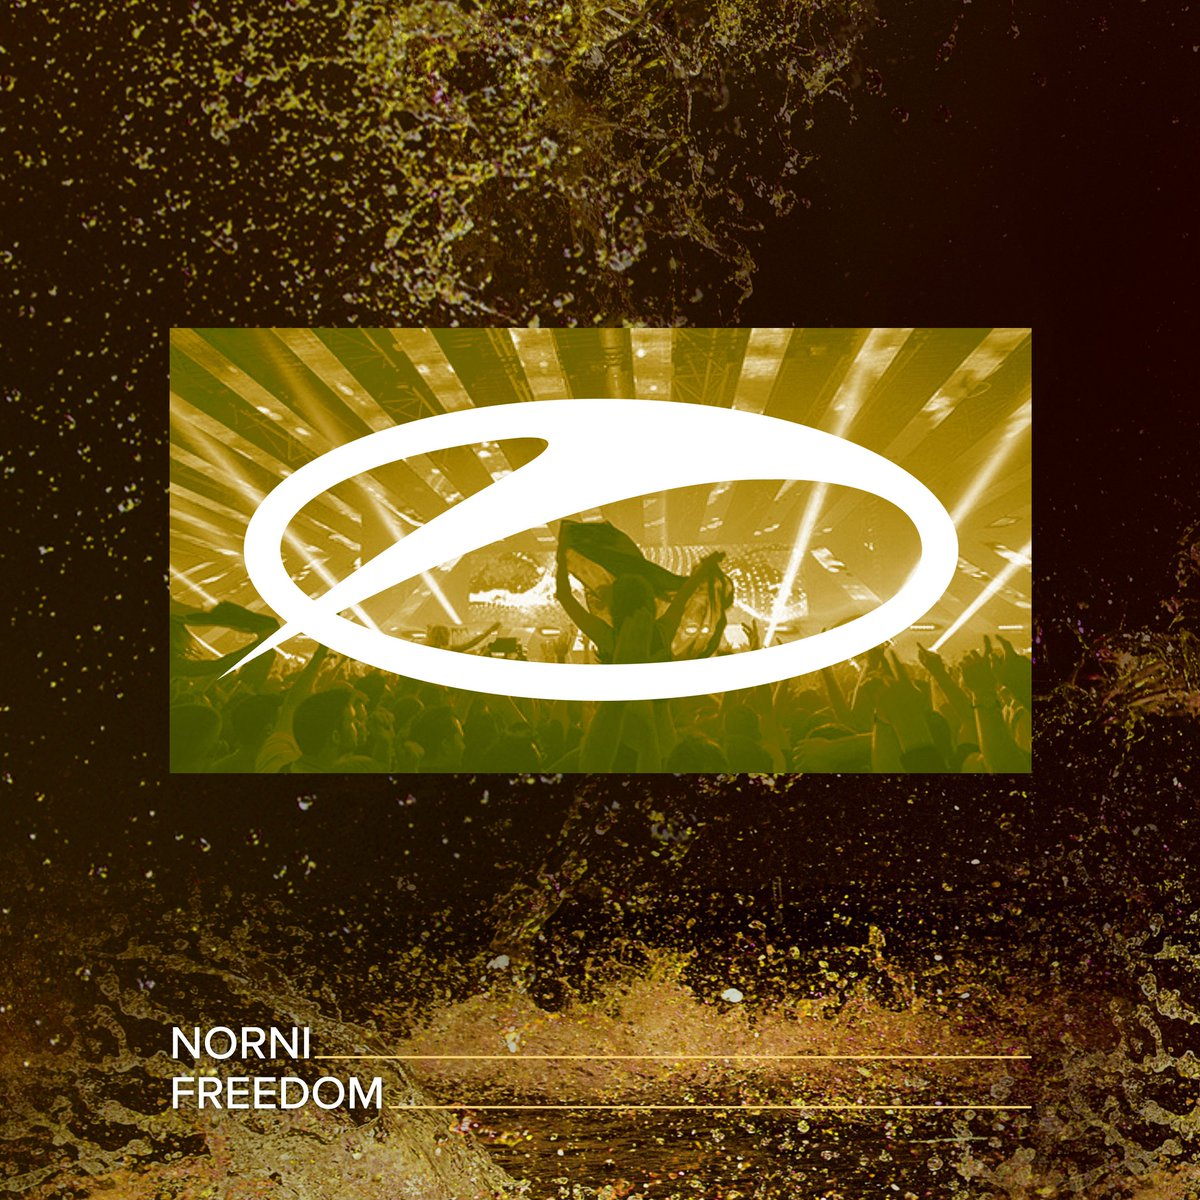 """Hi guys! I'm glad to present you my new track  """"Freedom"""" released today on label @asot  If yuo like the track you can stream /  download it by this link: https://t.co/91LuCm0gHD  #trance #trancefamily #progressivehouse #progressivetrance #vocaltrance #norni #Freedom #edm https://t.co/tDD4M9rkg0"""